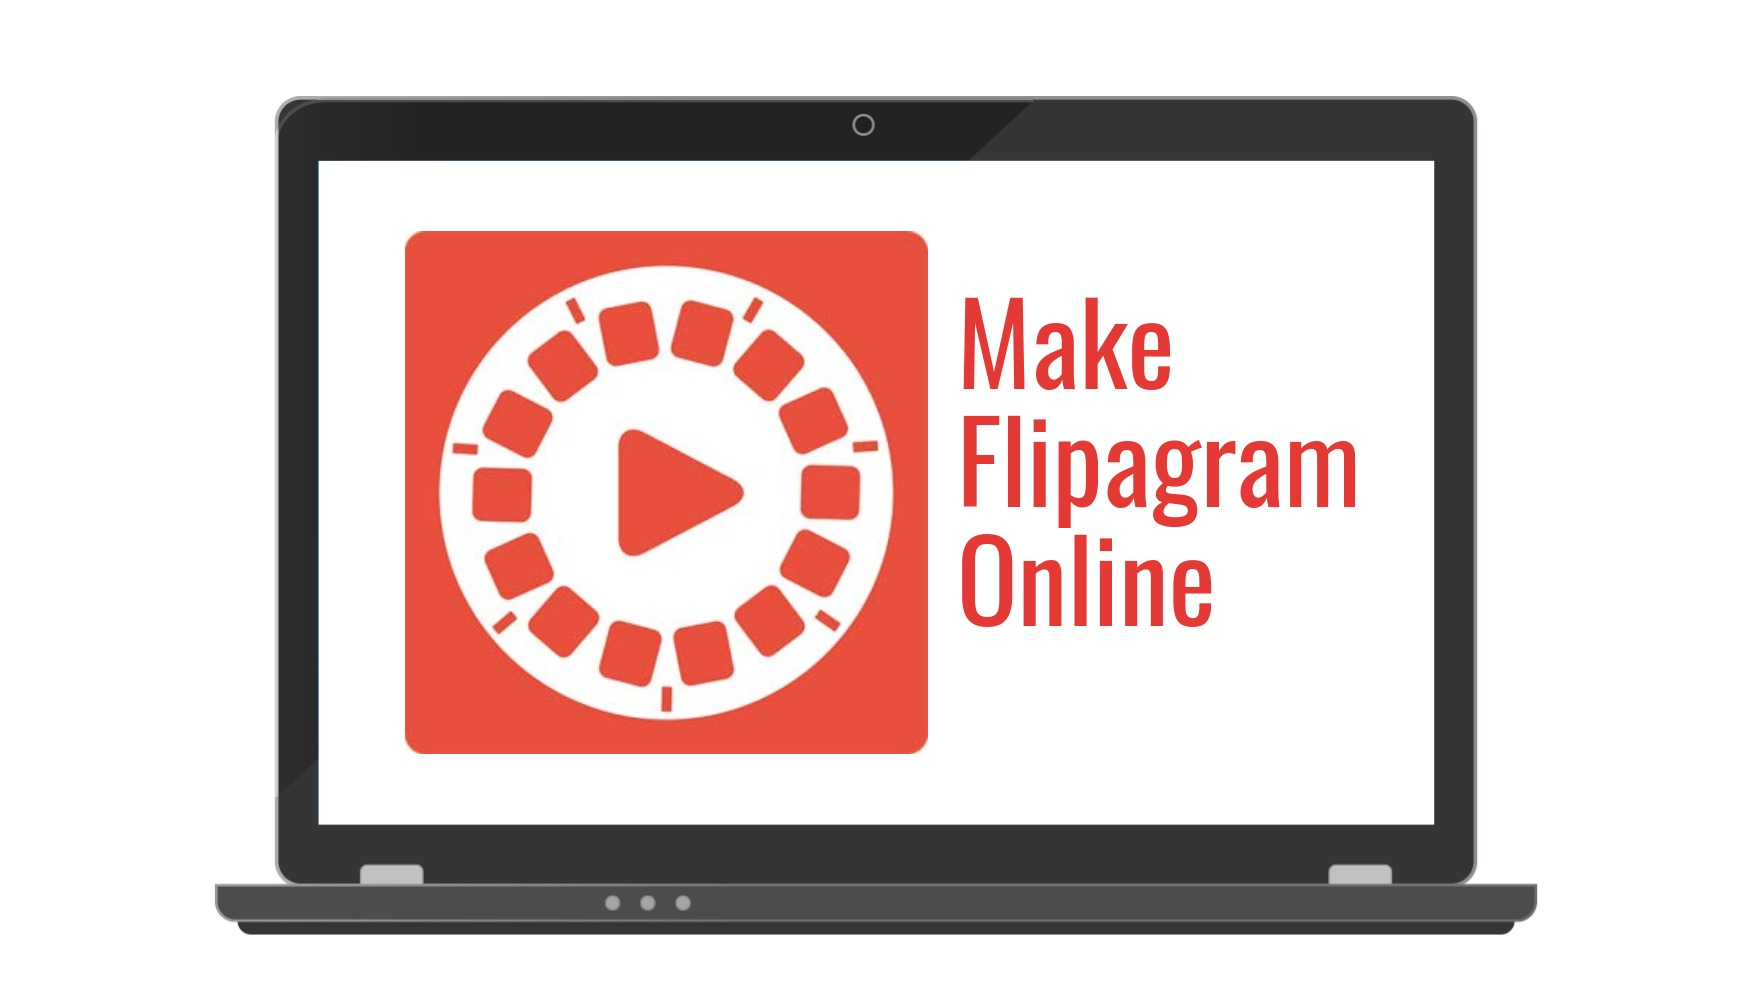 How to Make Flipagram Online